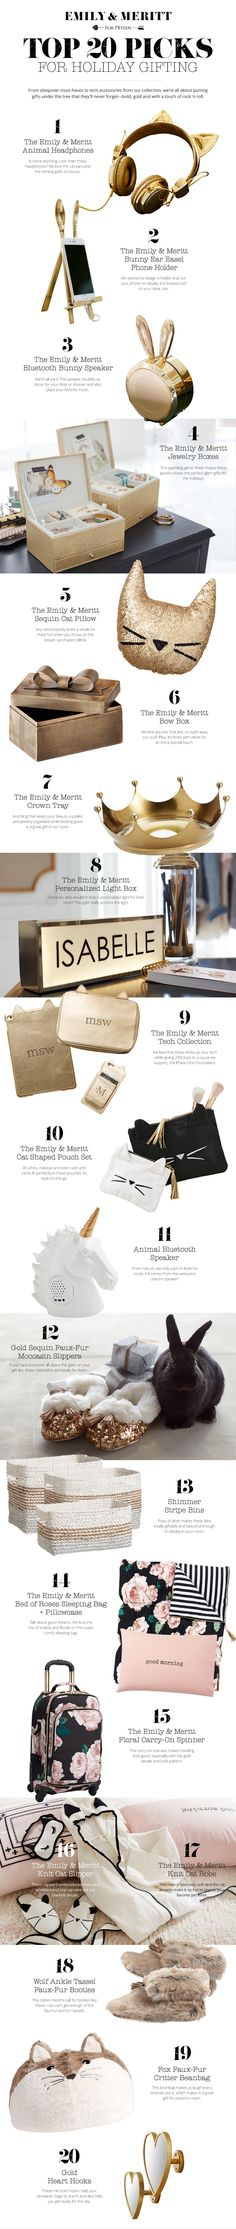 With holiday shopping in full swing, organizing your gifting list is a MUST! We asked designers Emily and Meritt to share their Top 20 Gift Picks that they would like wrapped up underneath their Christmas tree. With a mix of geek-chic and rock n' roll, we think you're going to love what you find!